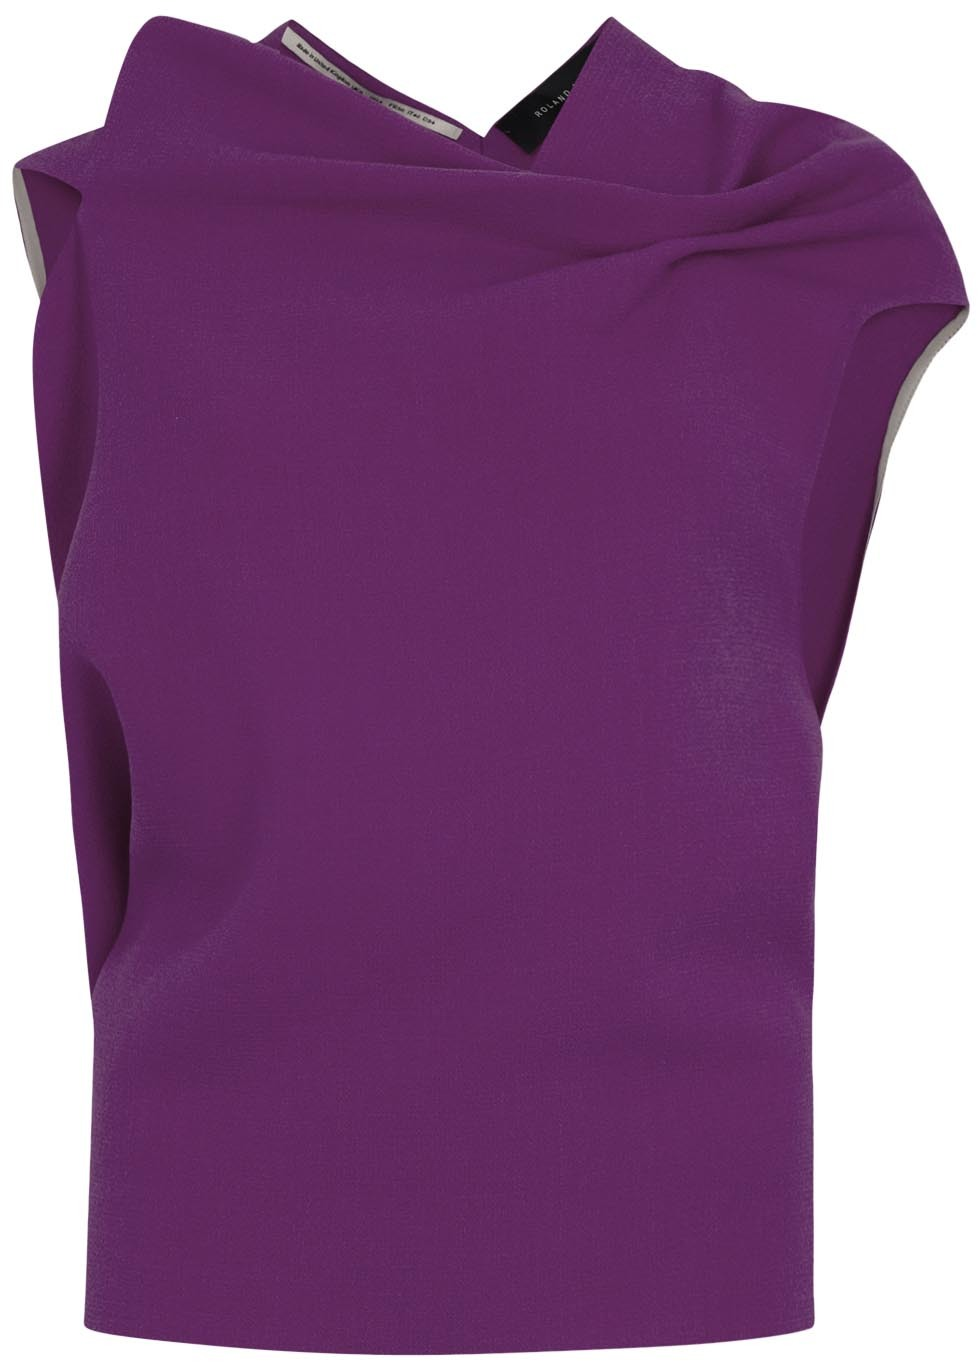 Eugene Violet Wool Crepe Top - pattern: plain; sleeve style: sleeveless; neckline: asymmetric; predominant colour: purple; occasions: casual, evening, creative work; length: standard; style: top; fibres: wool - 100%; fit: straight cut; sleeve length: short sleeve; texture group: crepes; pattern type: fabric; season: s/s 2015; wardrobe: highlight